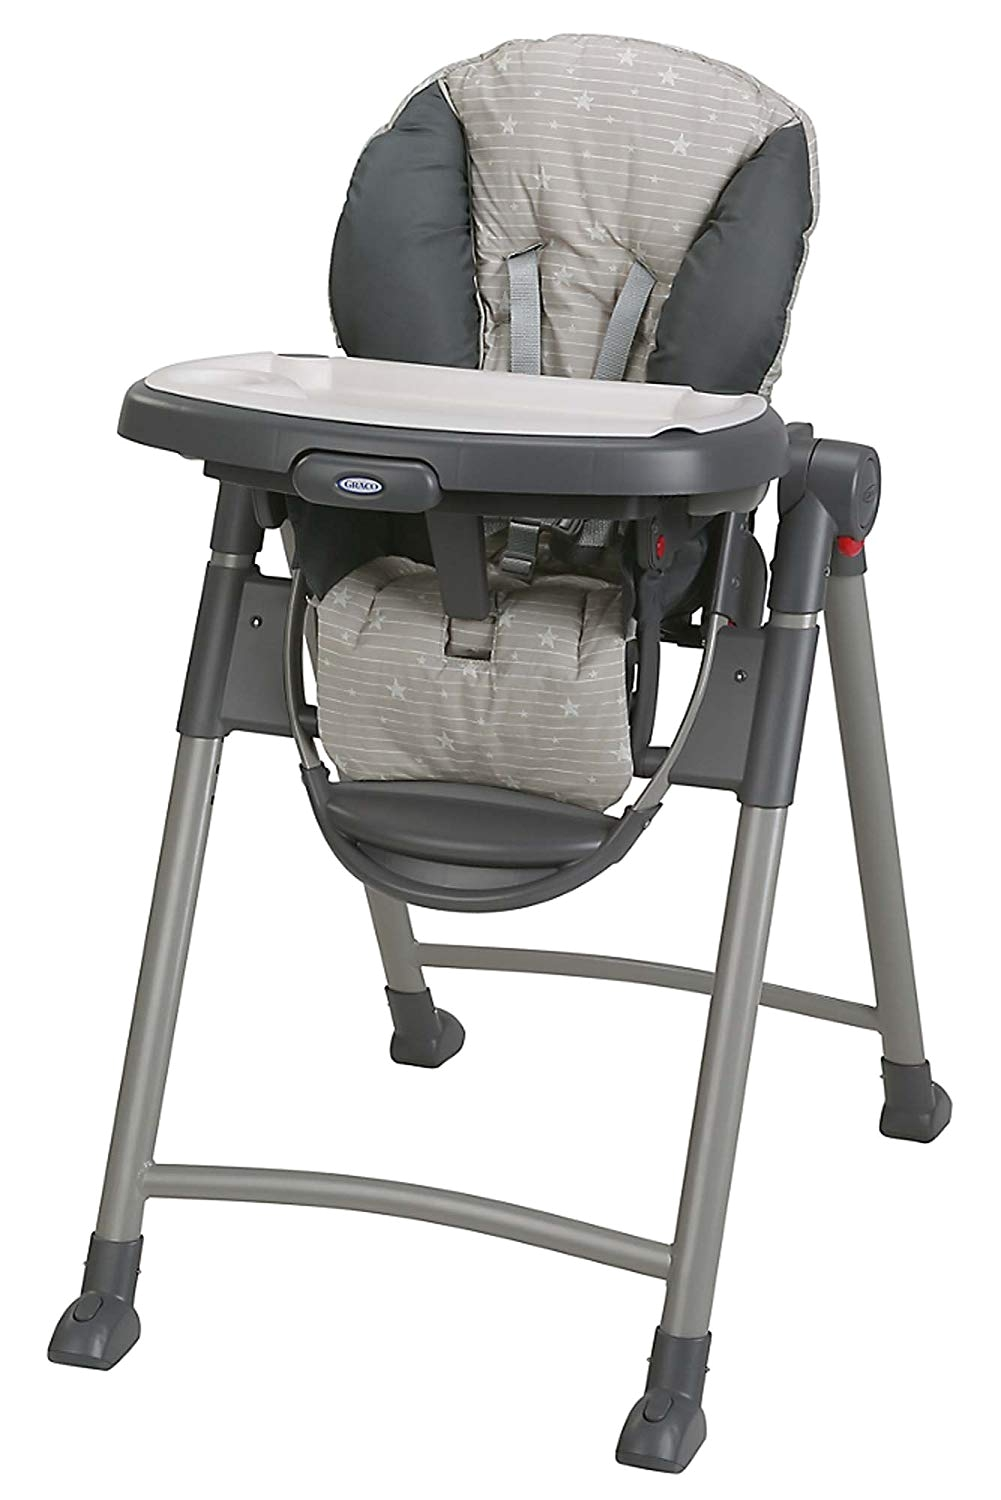 graco slim spaces high chair kids double folding manor amazon com contempo stars one size baby